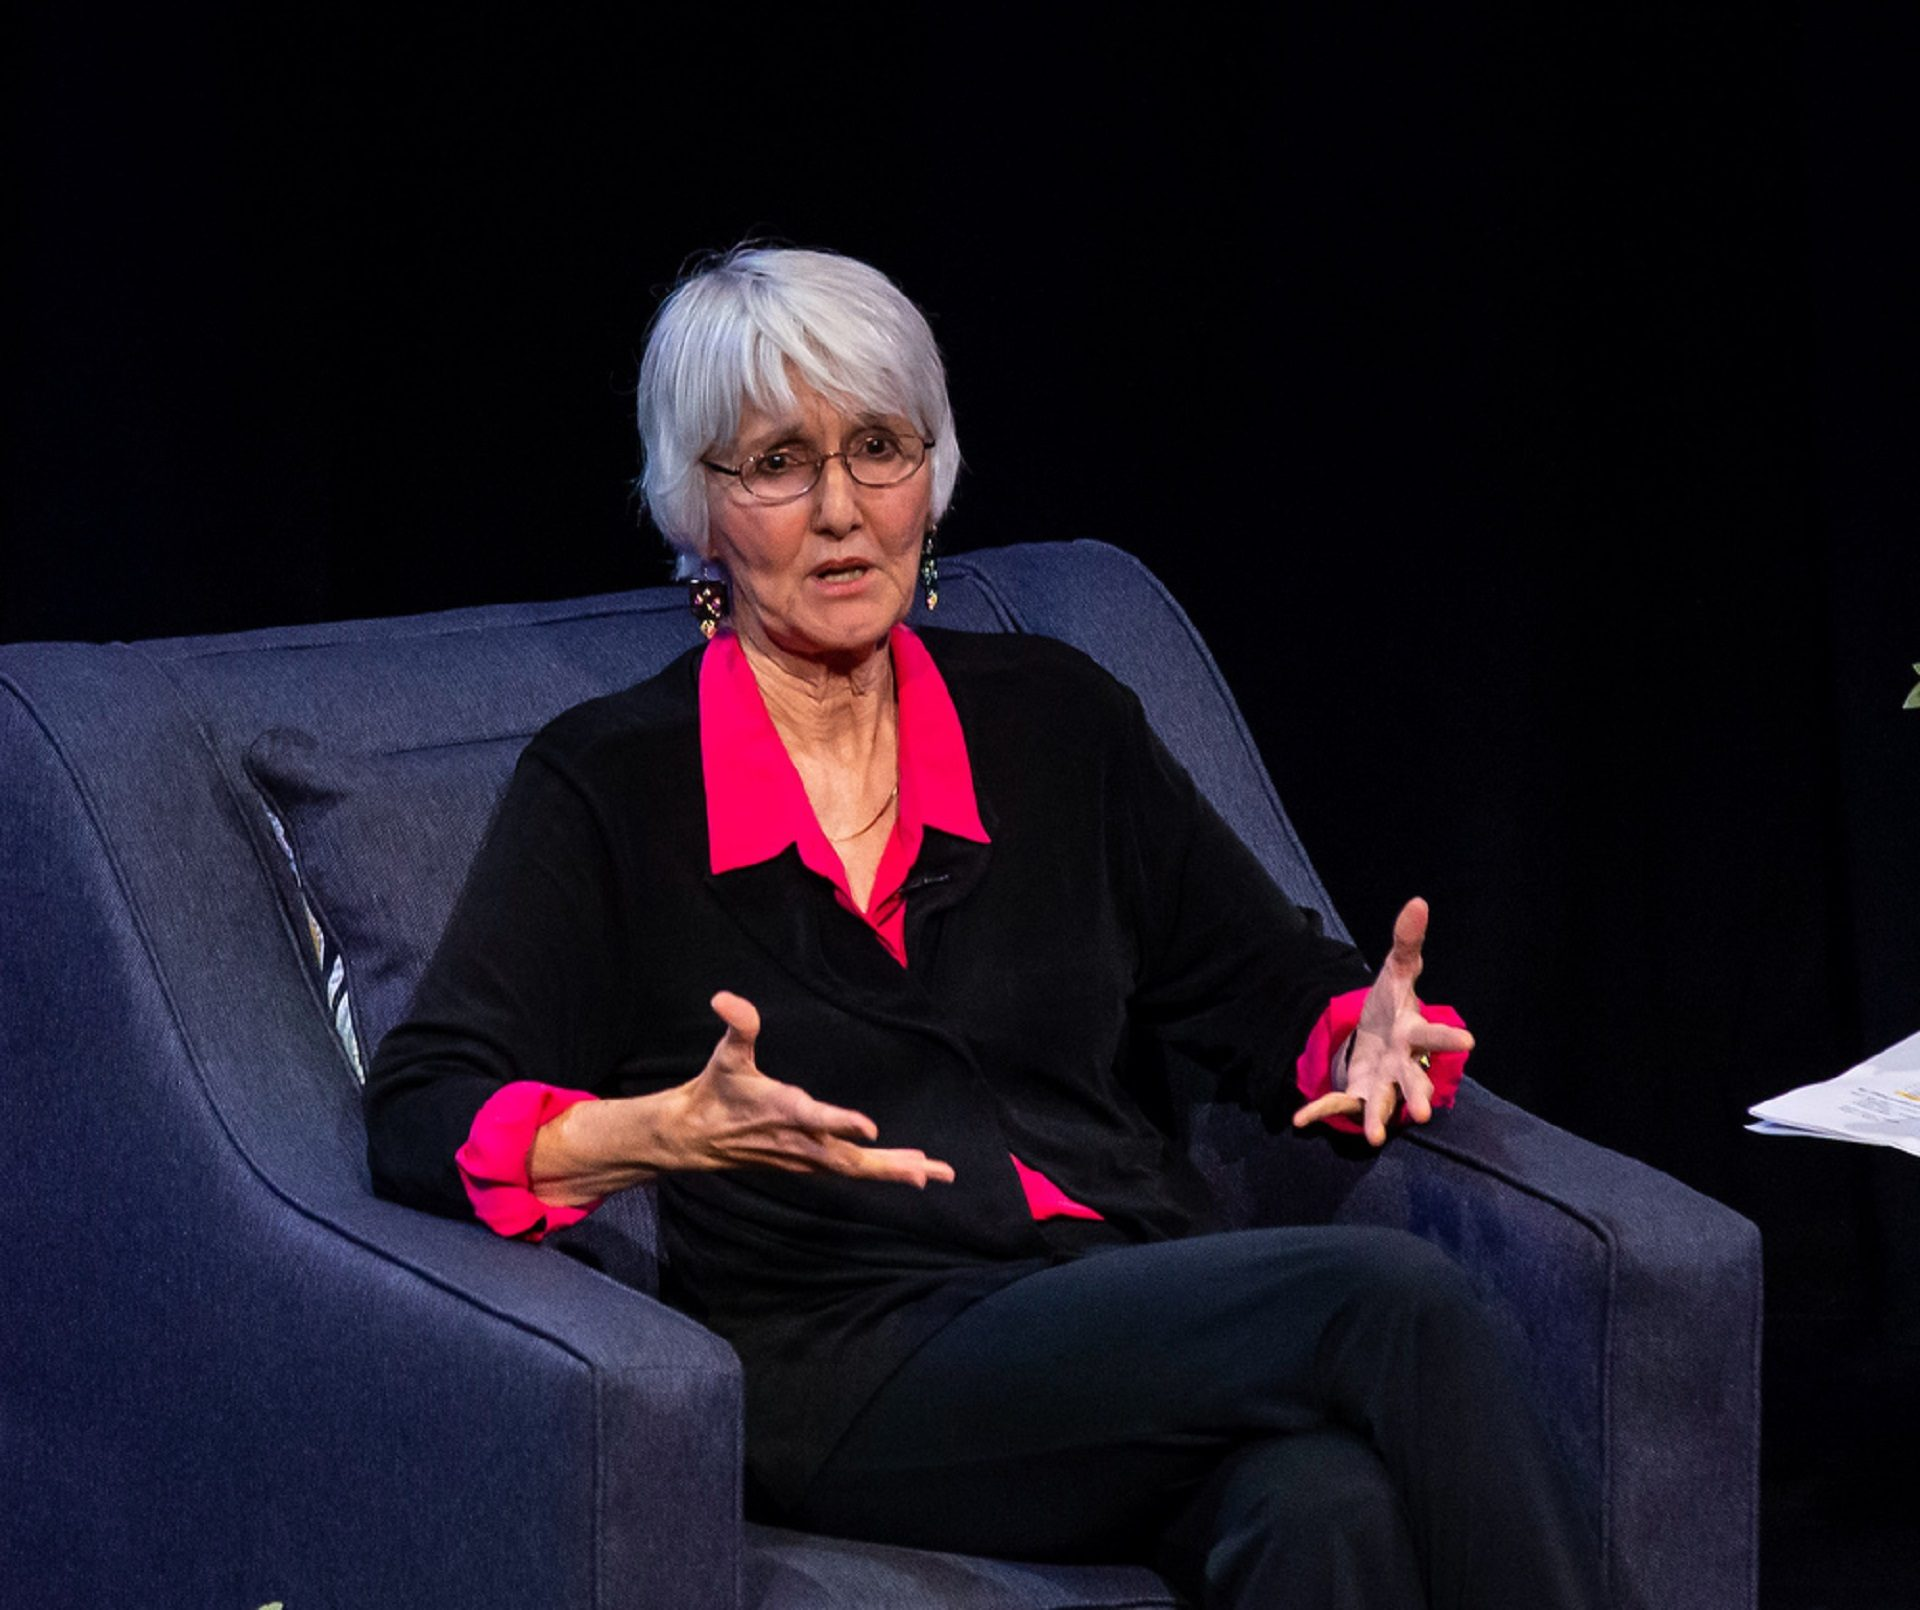 Sue Klebold, an advocate of mental health awareness and mother of one of the Columbine High School shooters, speaks at Penn State Harrisburg on September 16, 2019.